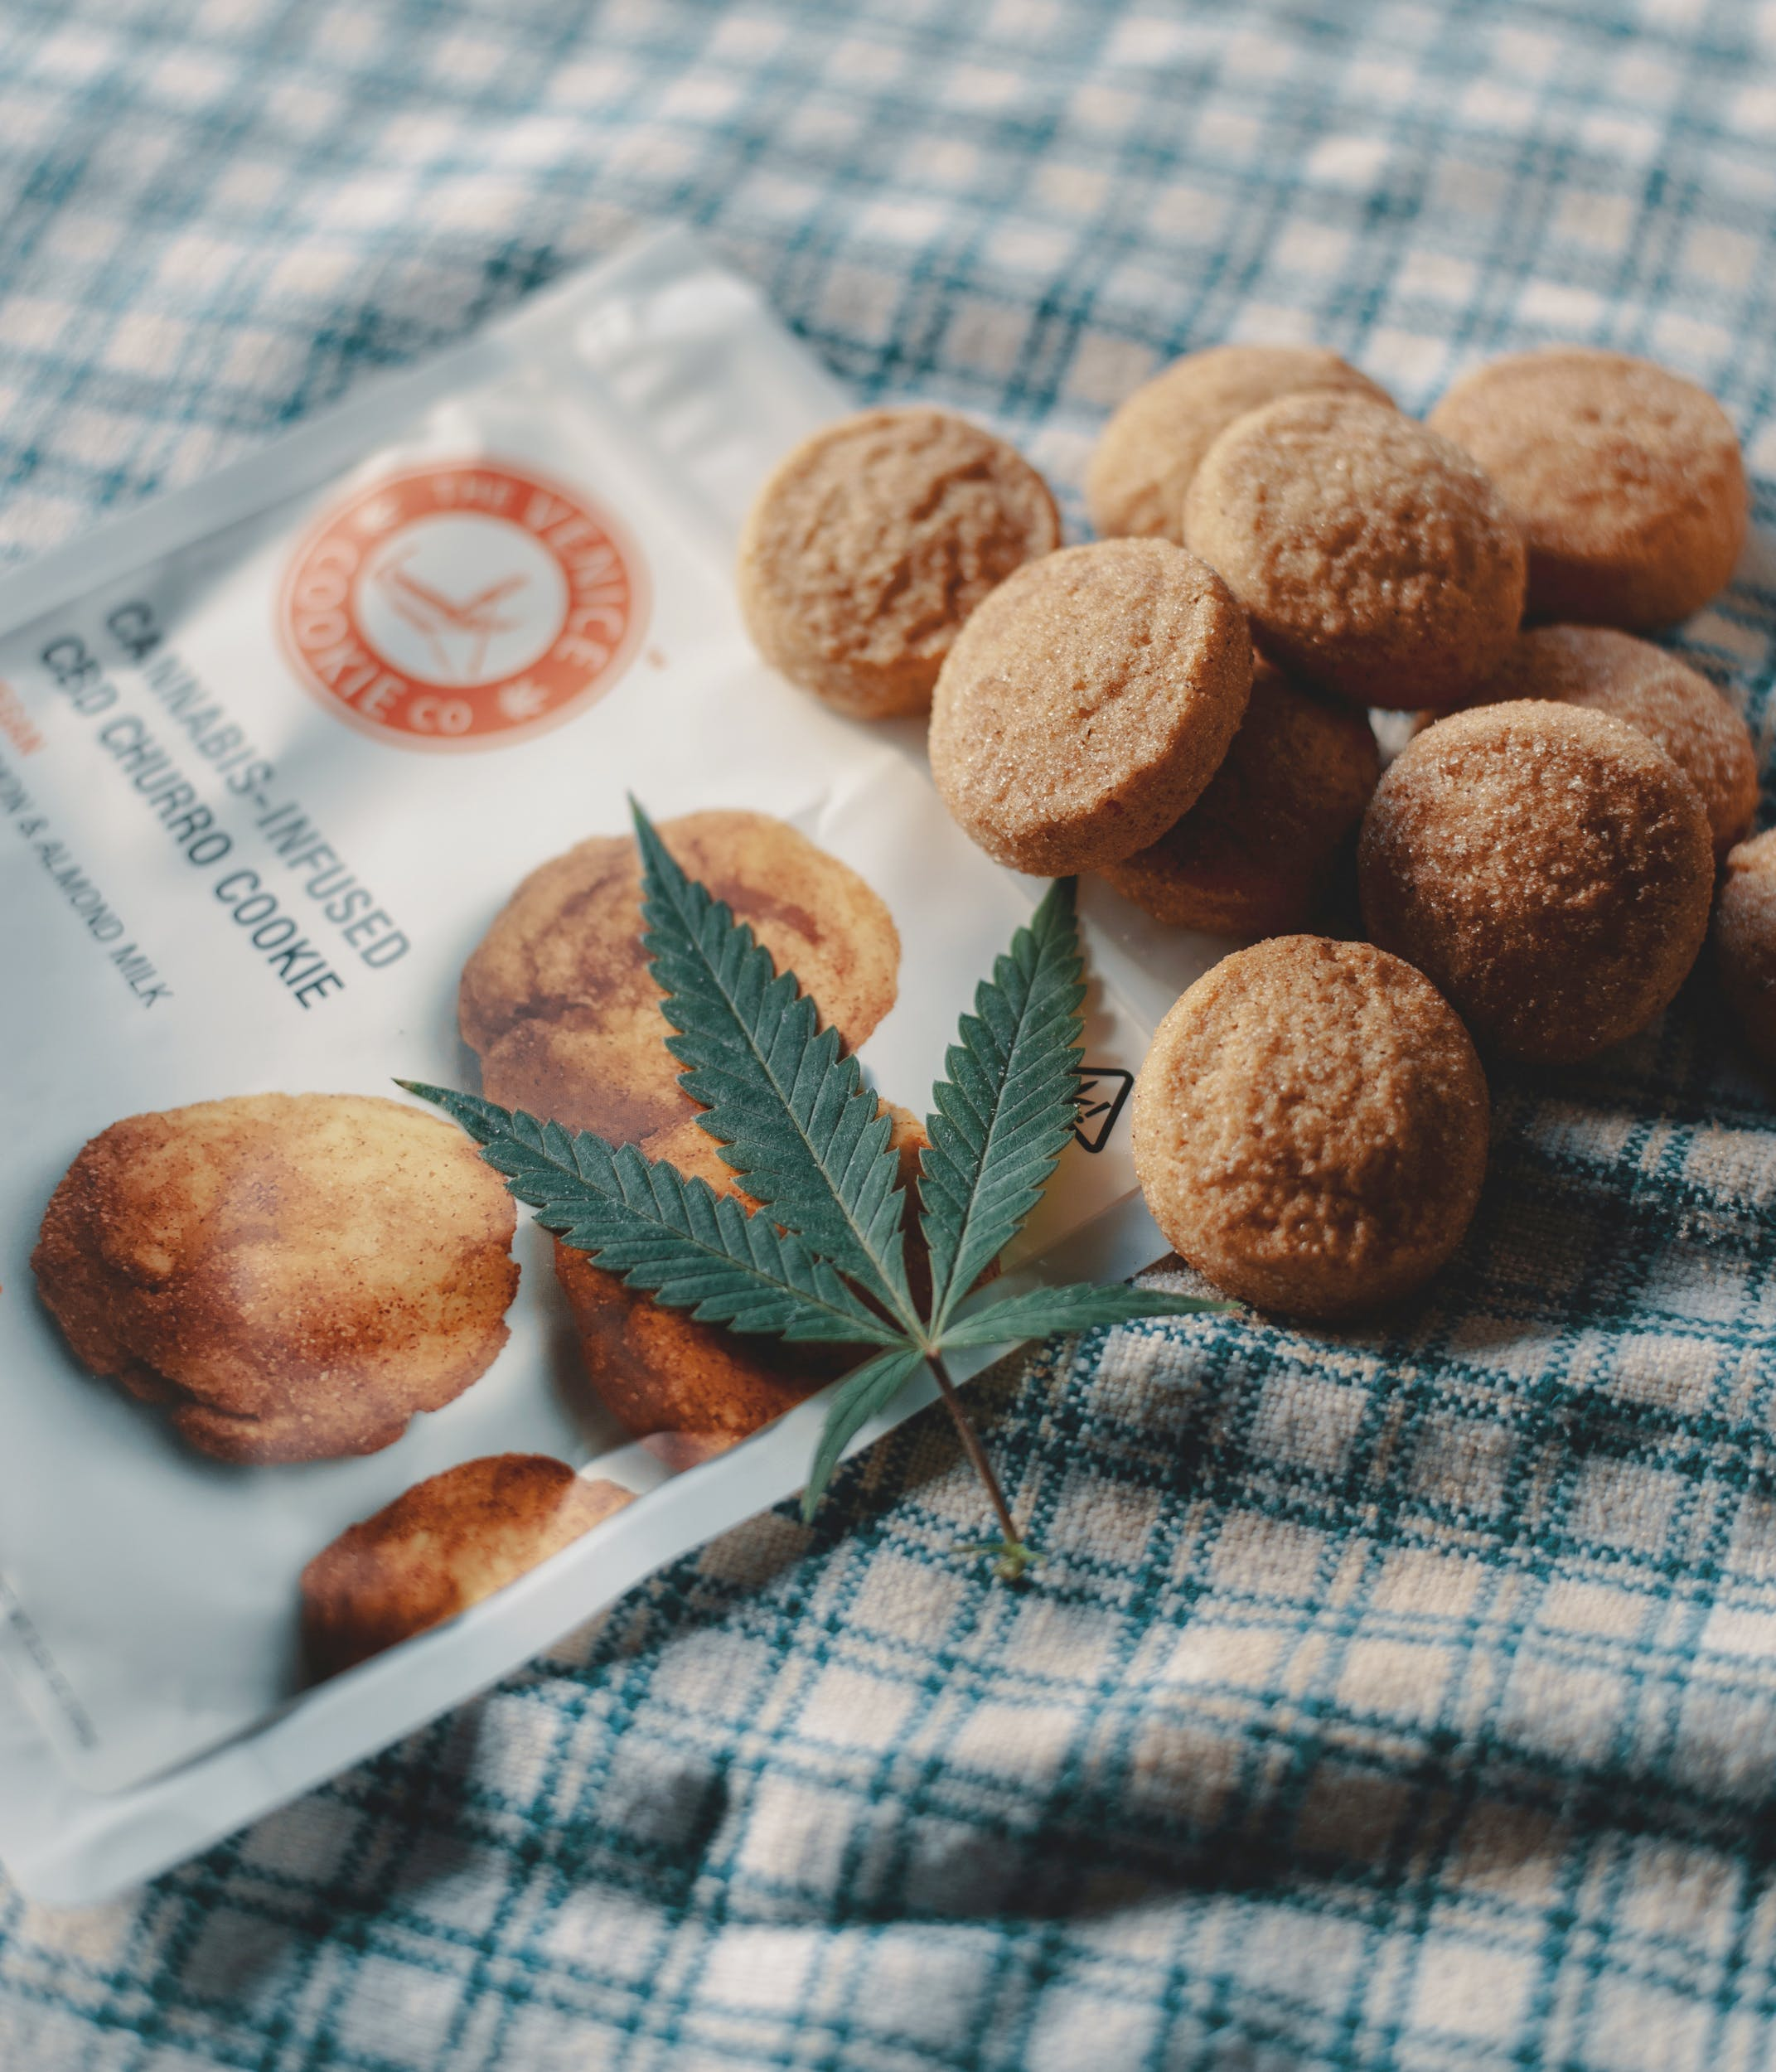 Best Weed Cookies 19 These Are The Best Weed Cookies Weve Ever Tried